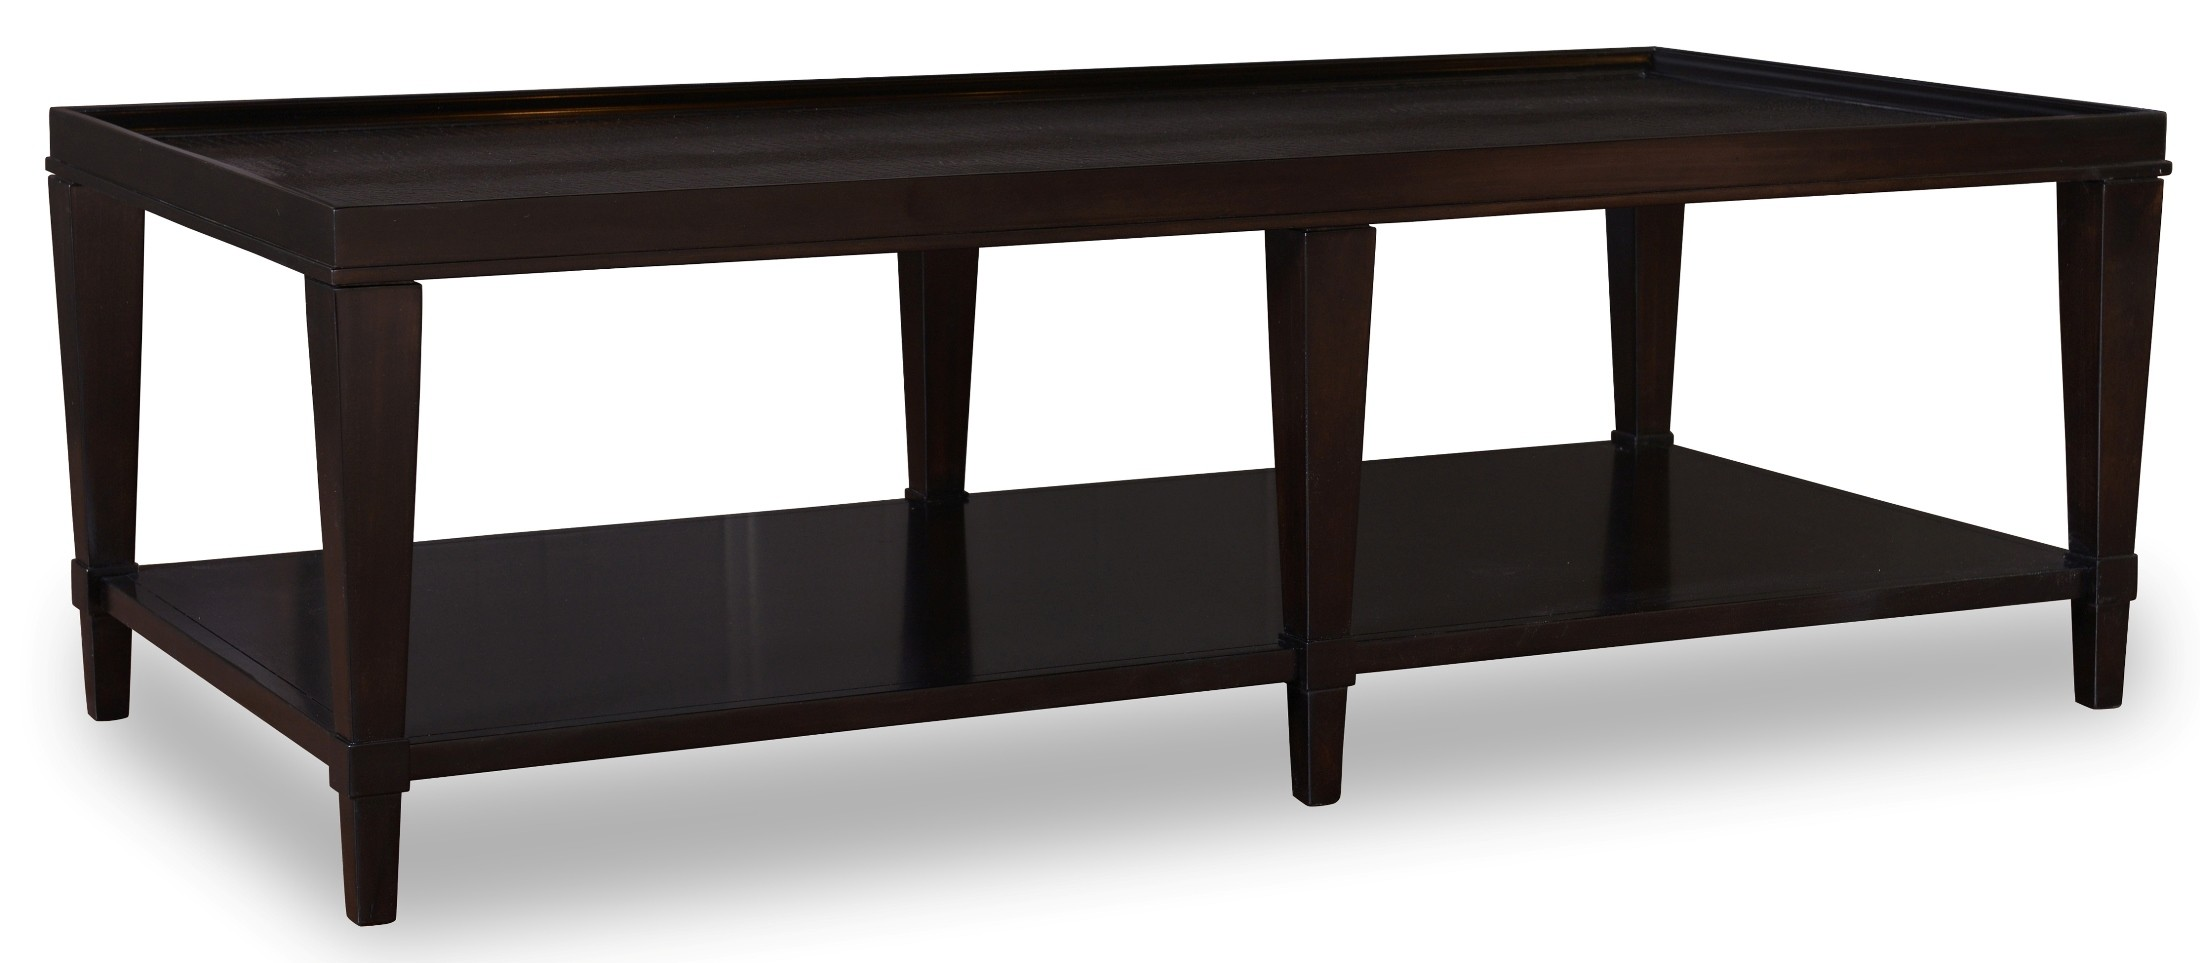 Cosmopolitan Ebony Rectangular Cocktail Table From Art 208300 1815 Coleman Furniture